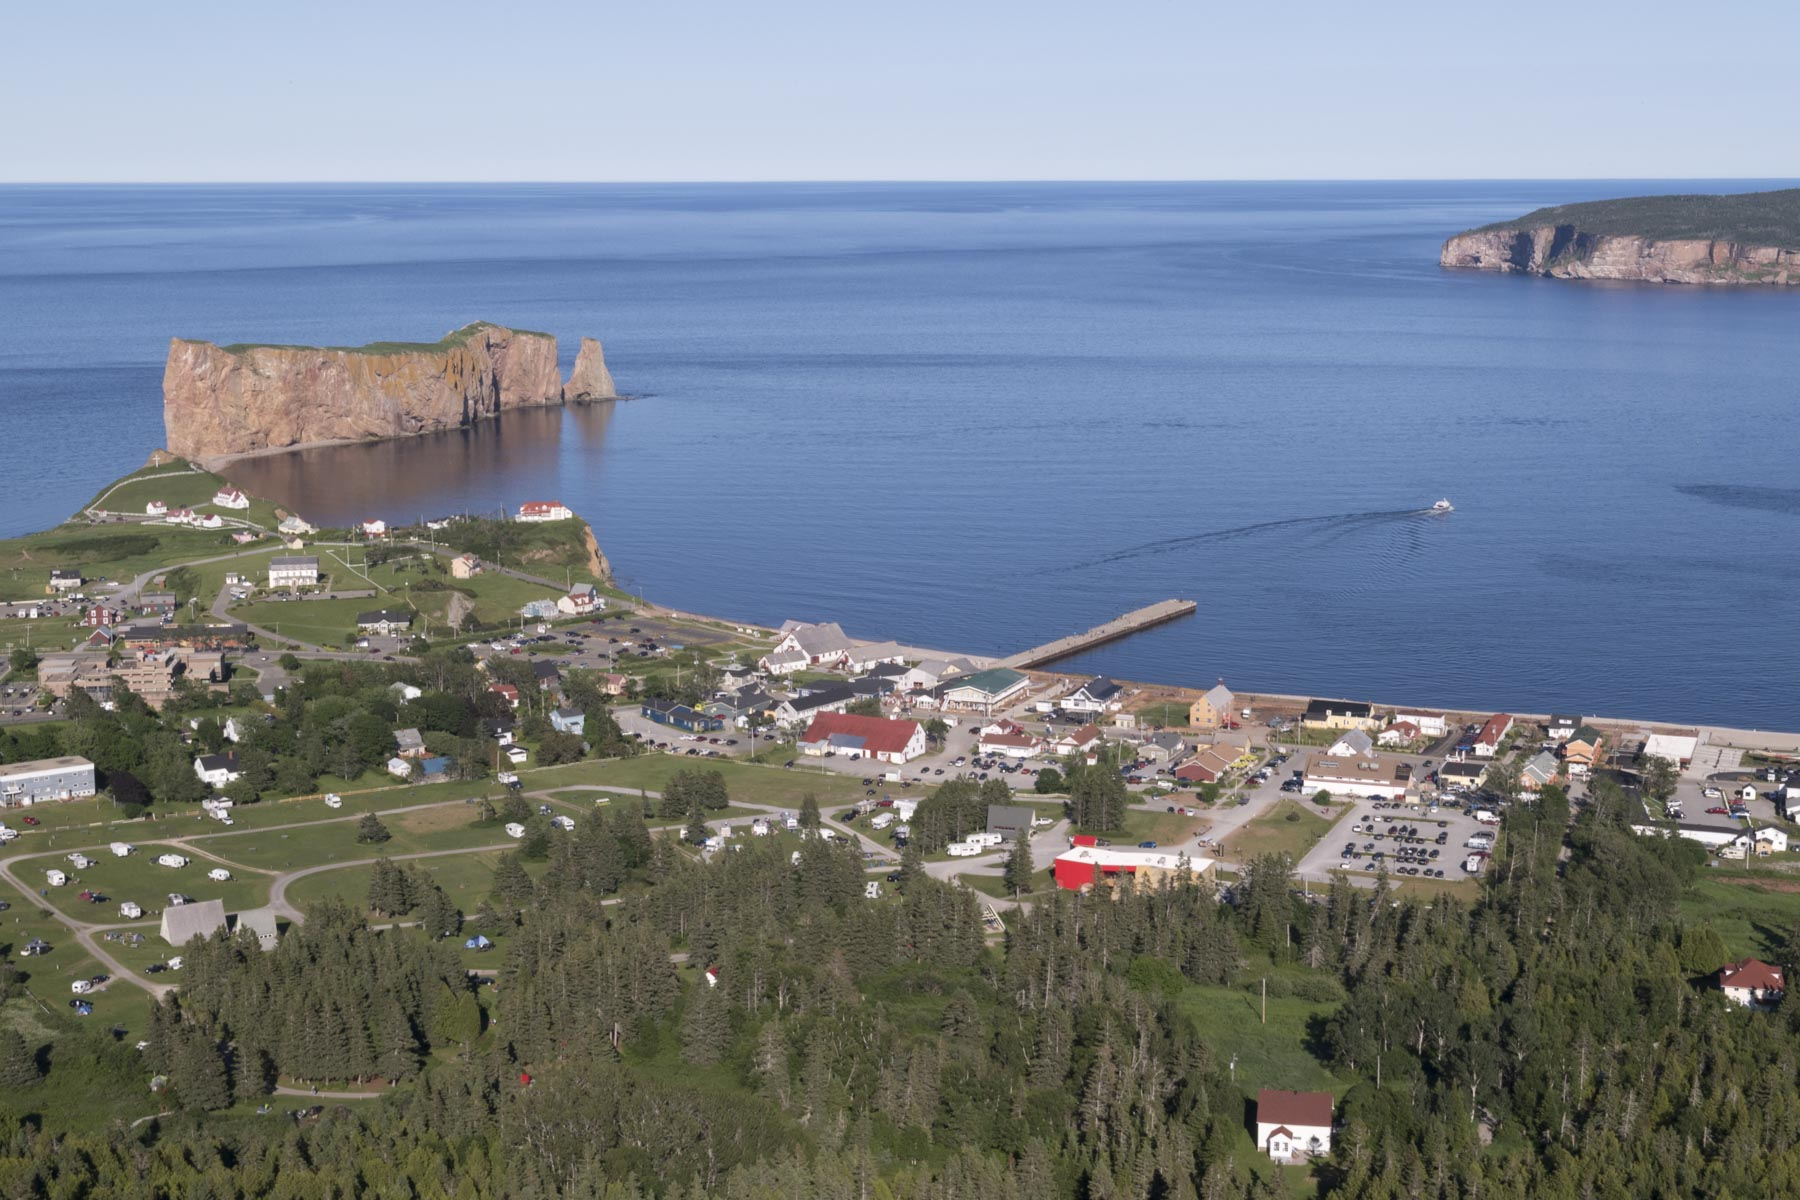 Her Excellency began a three-day regional visit in the Gaspé Peninsula in Quebec on July 11, 2018.